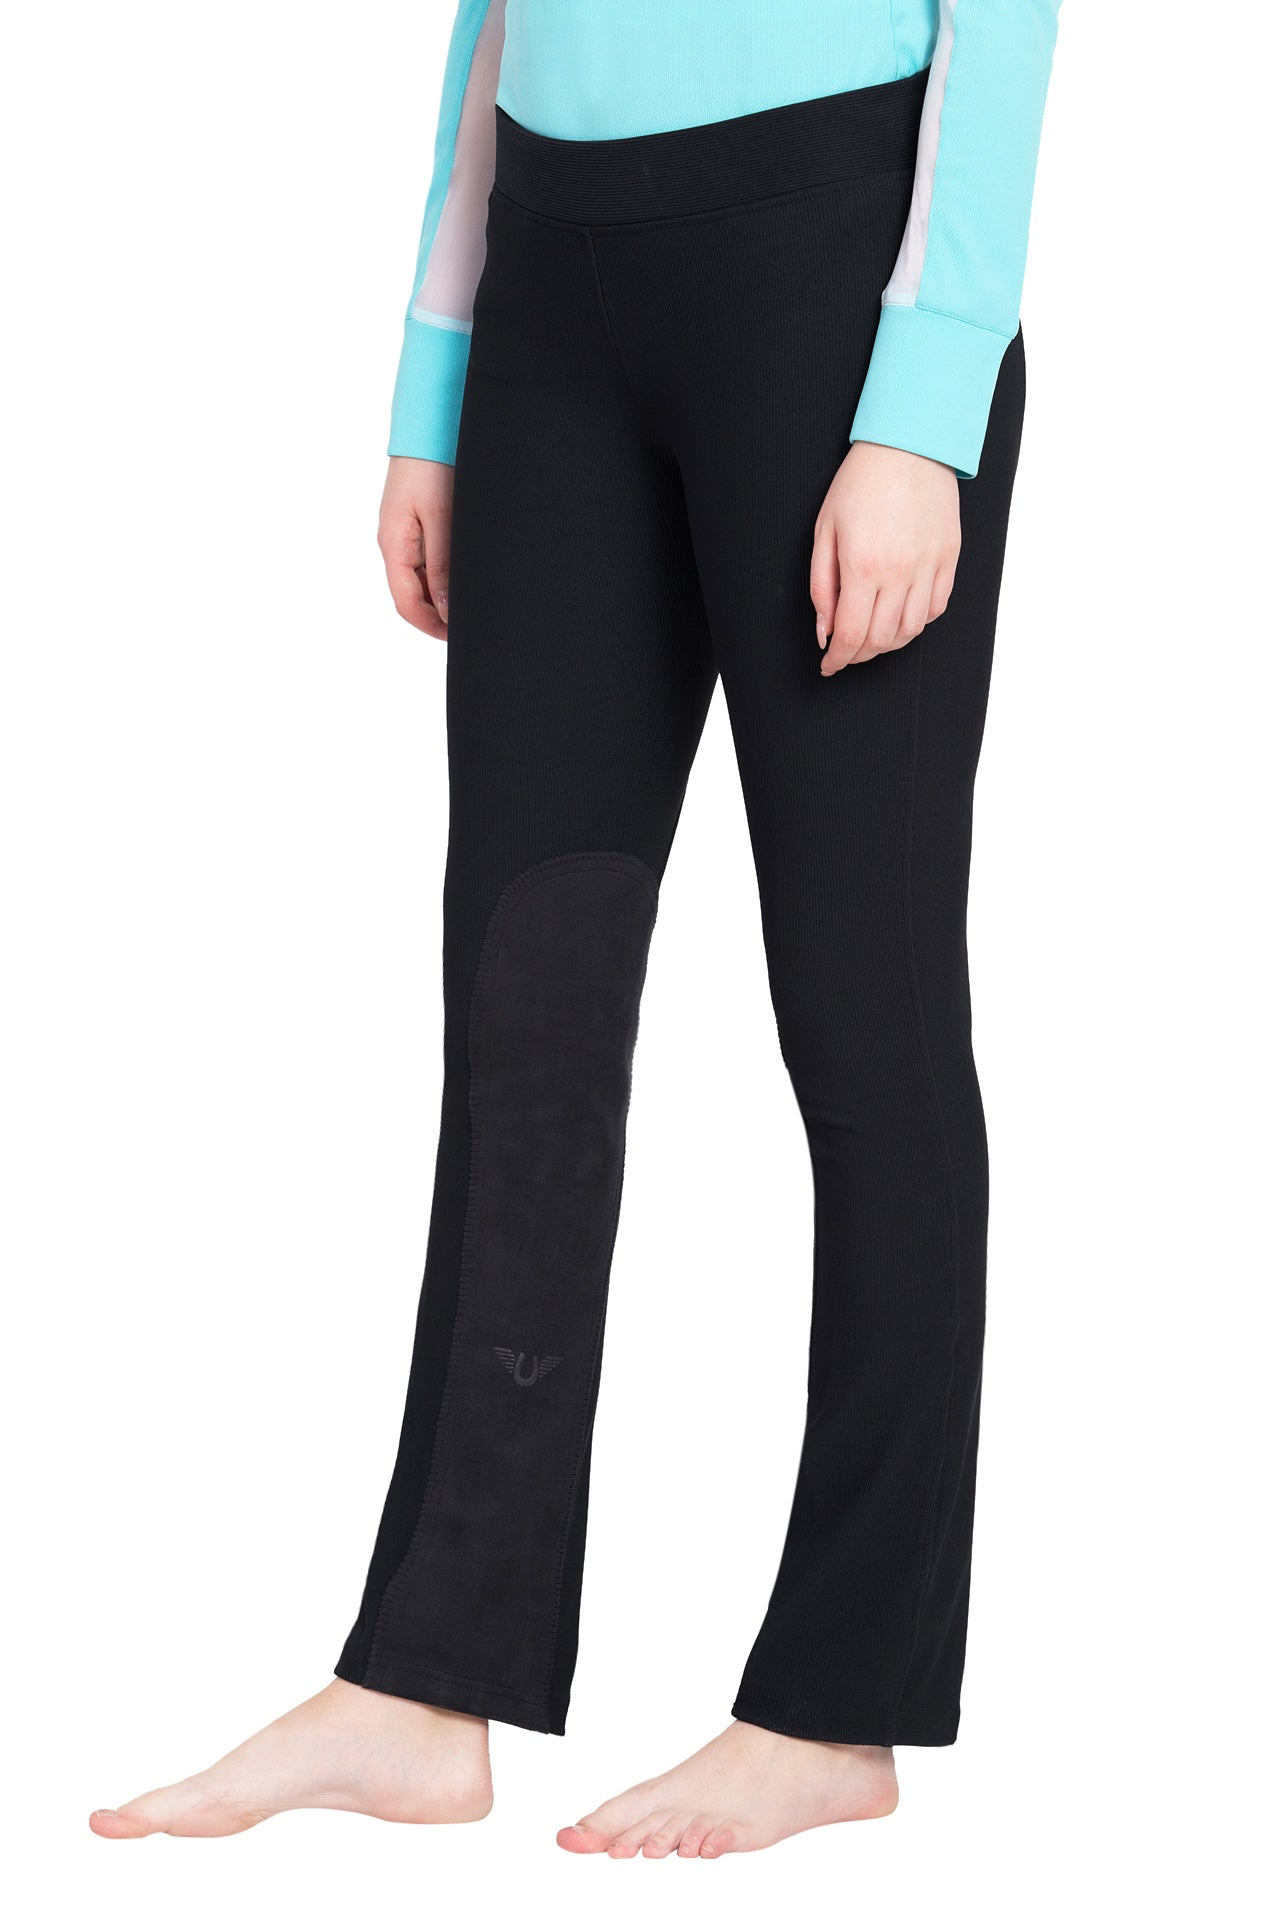 TuffRider Ladies Ribbed Boot Cut Riding Tights_589